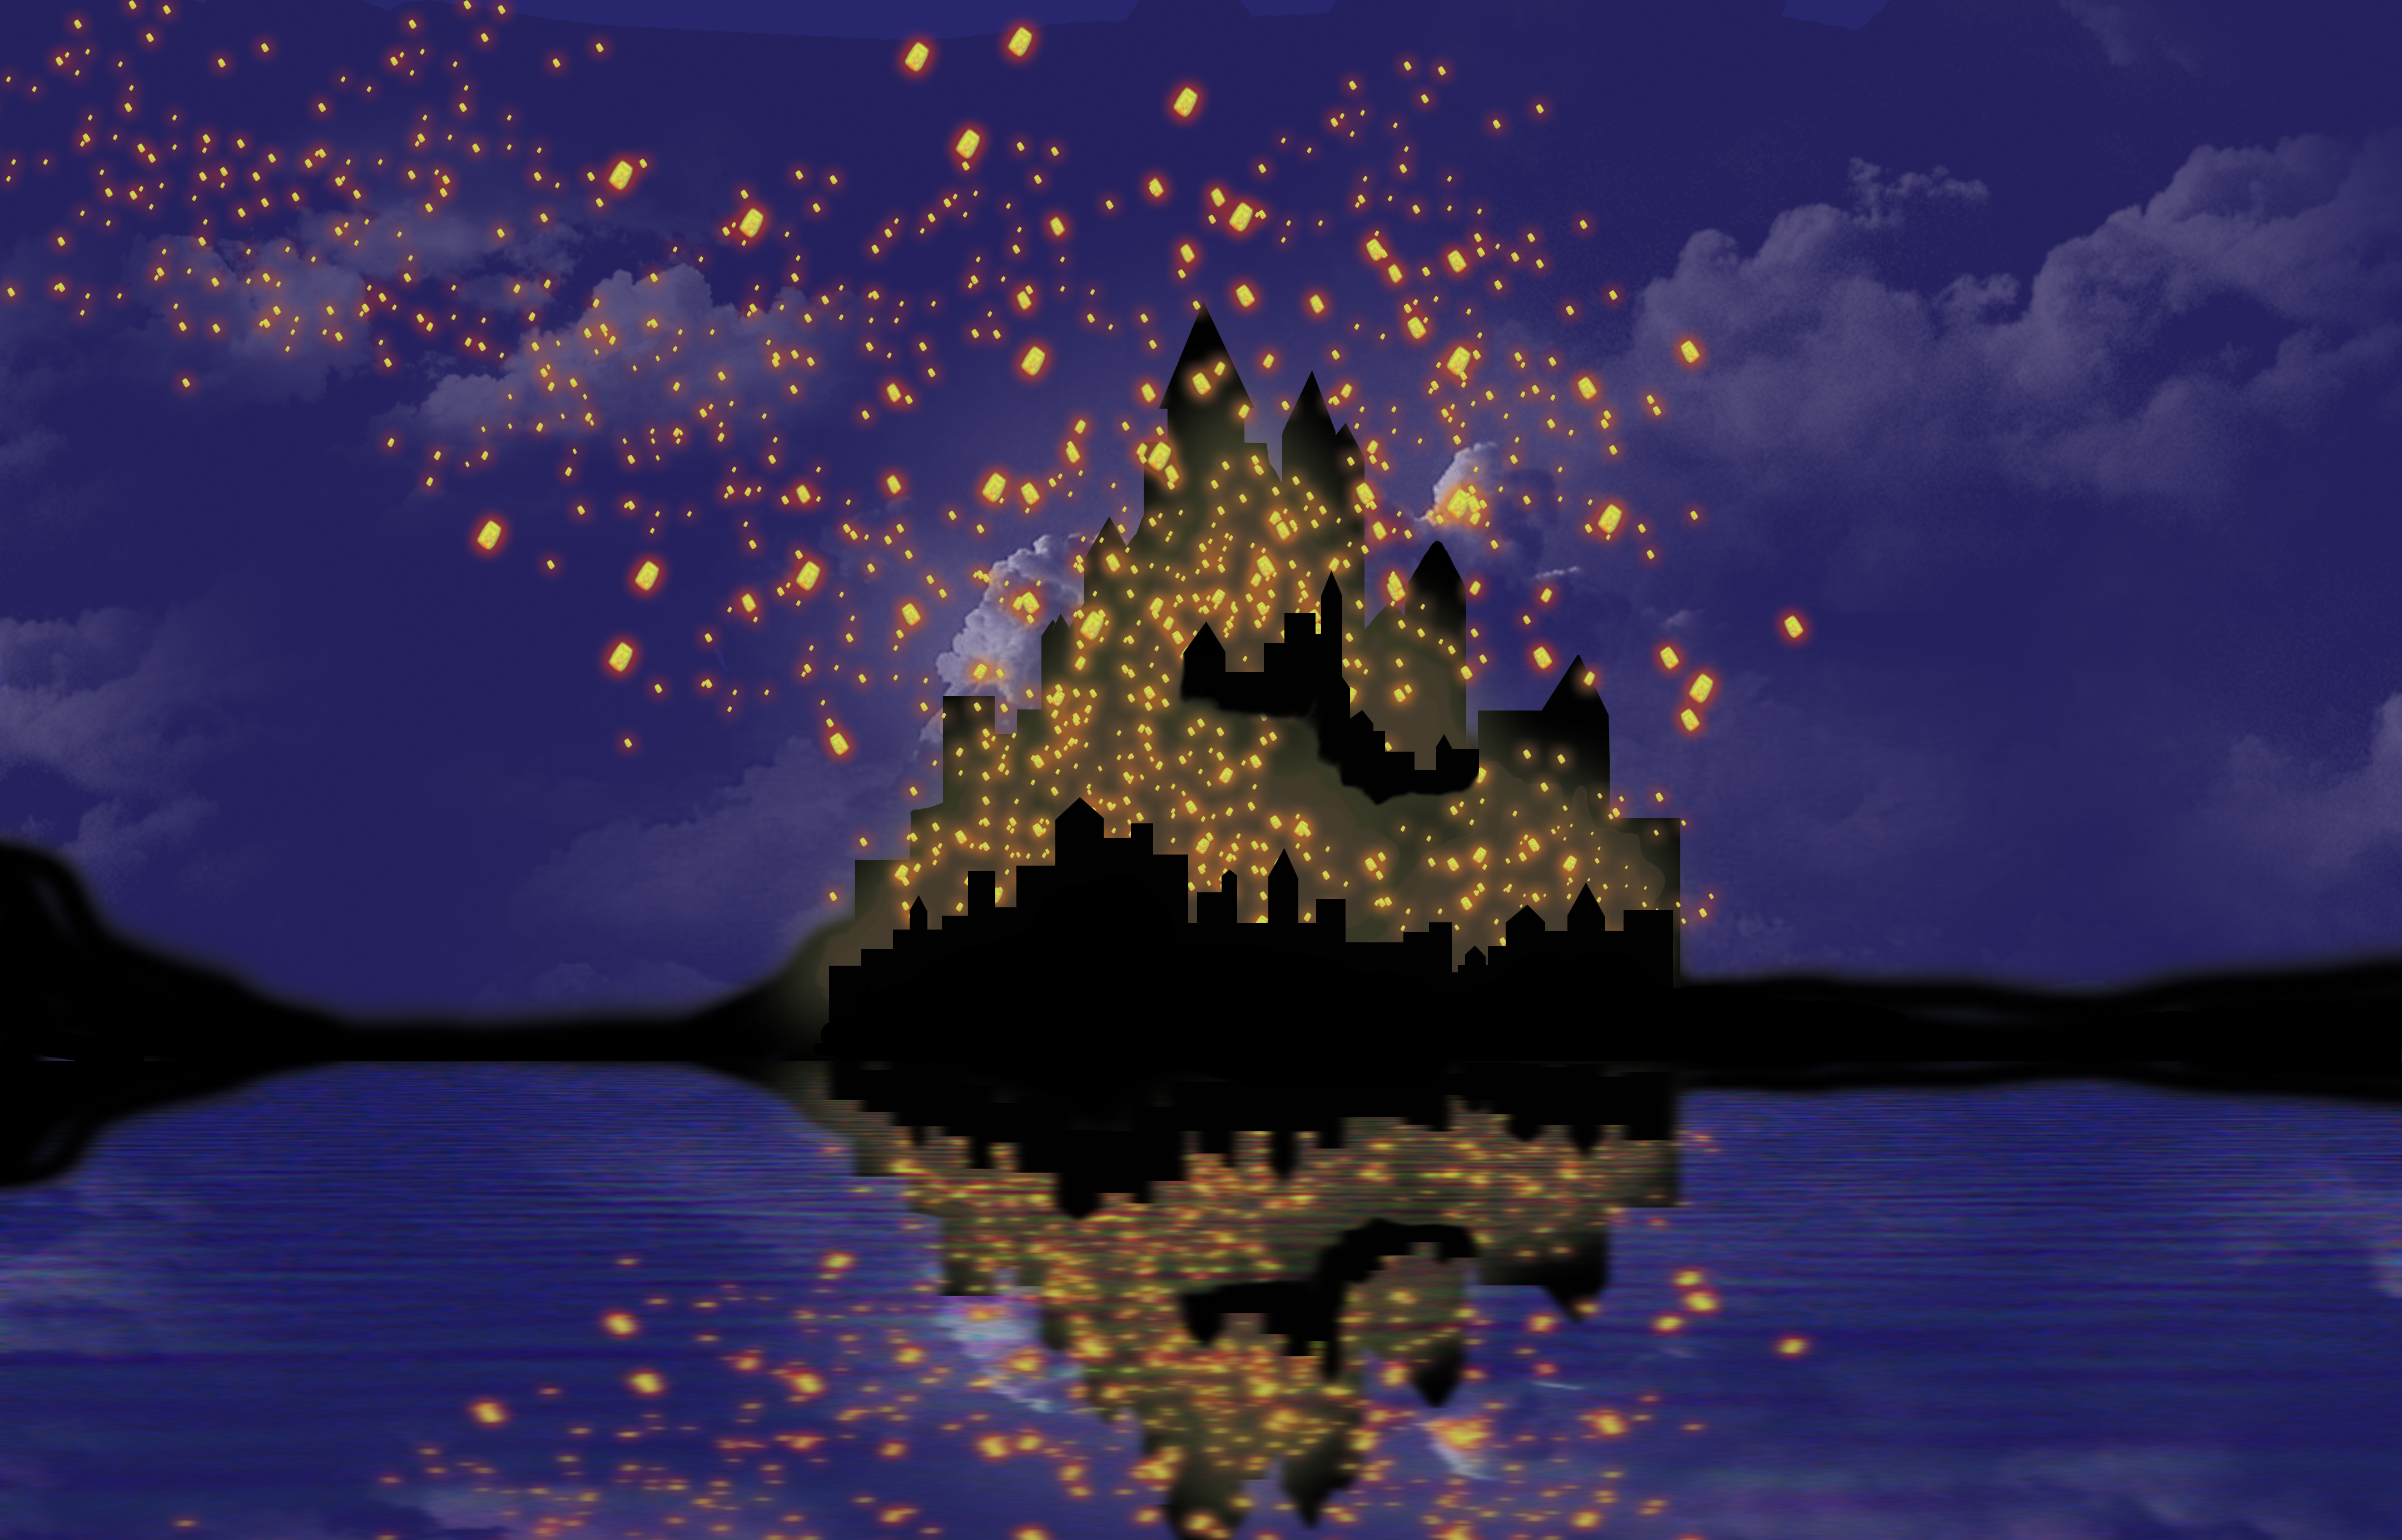 tangled ever after hd wallpapers